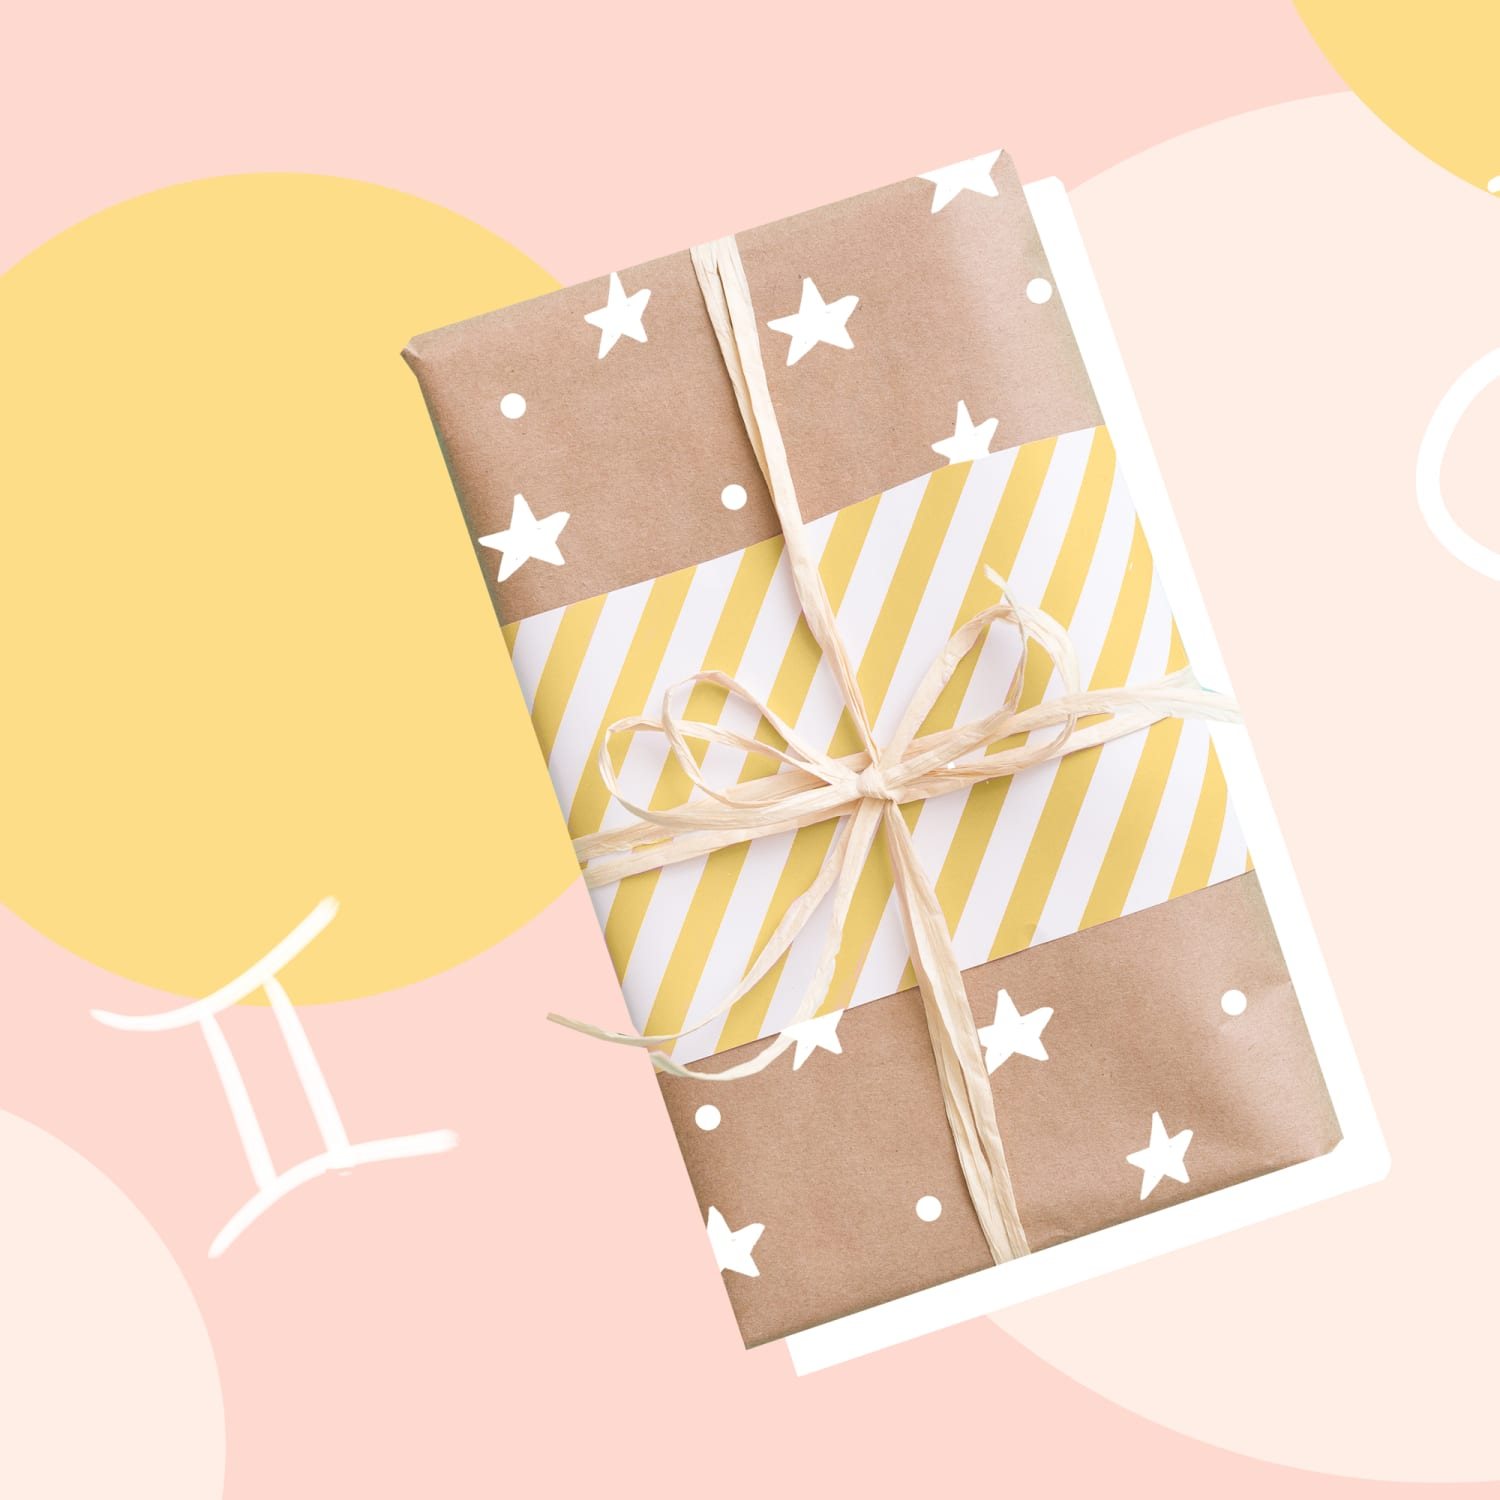 Best Birthday Gifts for a Taurus or a Gemini | Kitchn